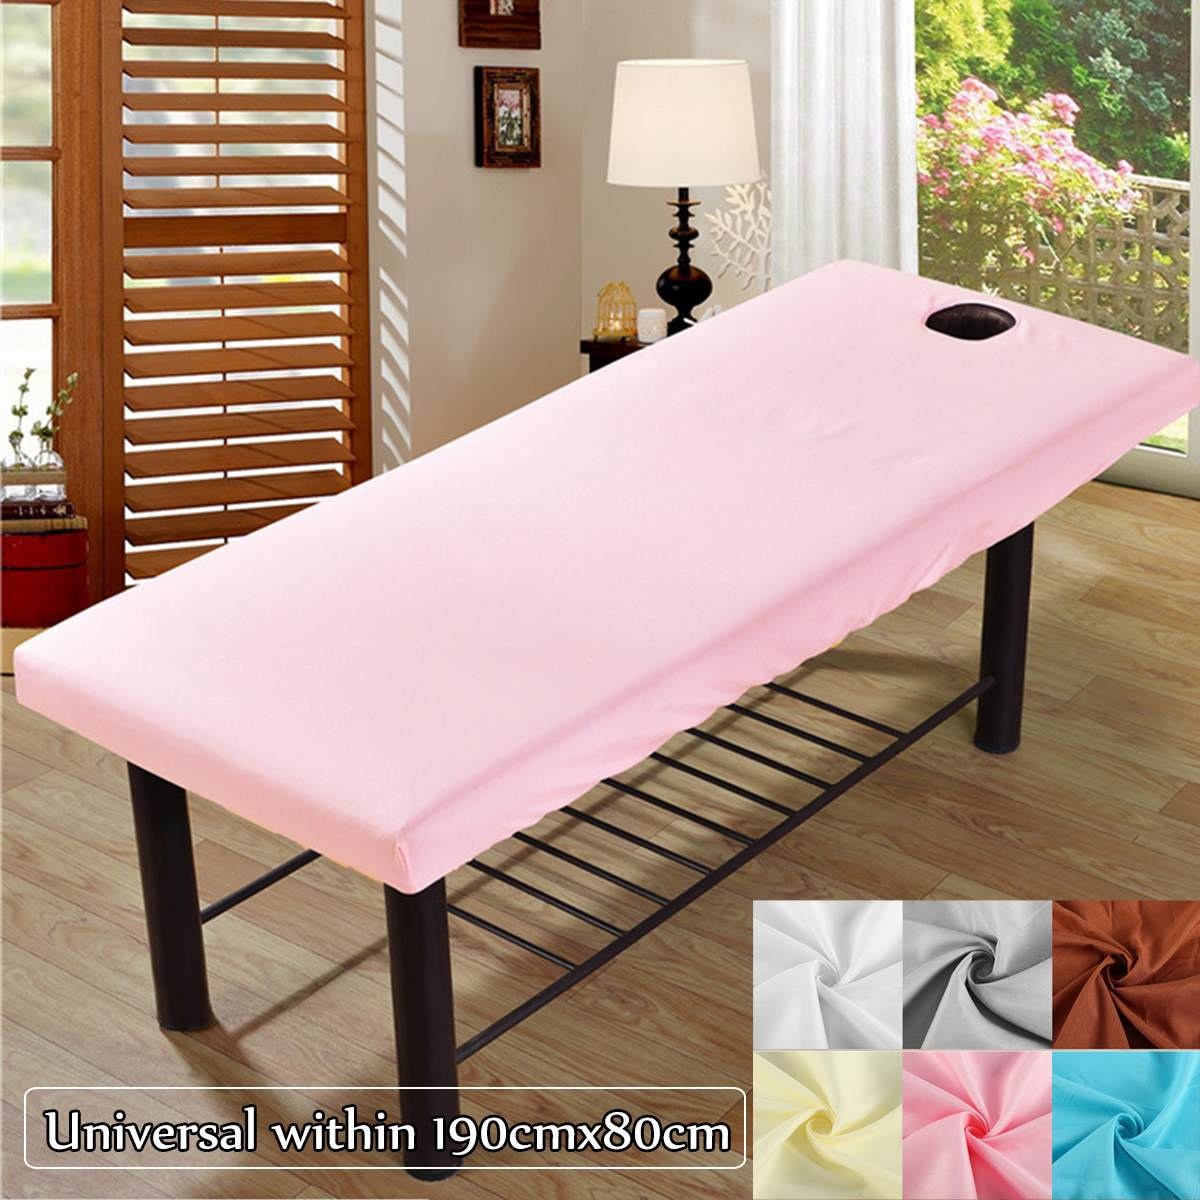 Soft Polyester Massage Bed Cover Beauty Salon Massage Sheet Body SPA Treatment Relaxation Bedsheet With Face Breath Hole 1